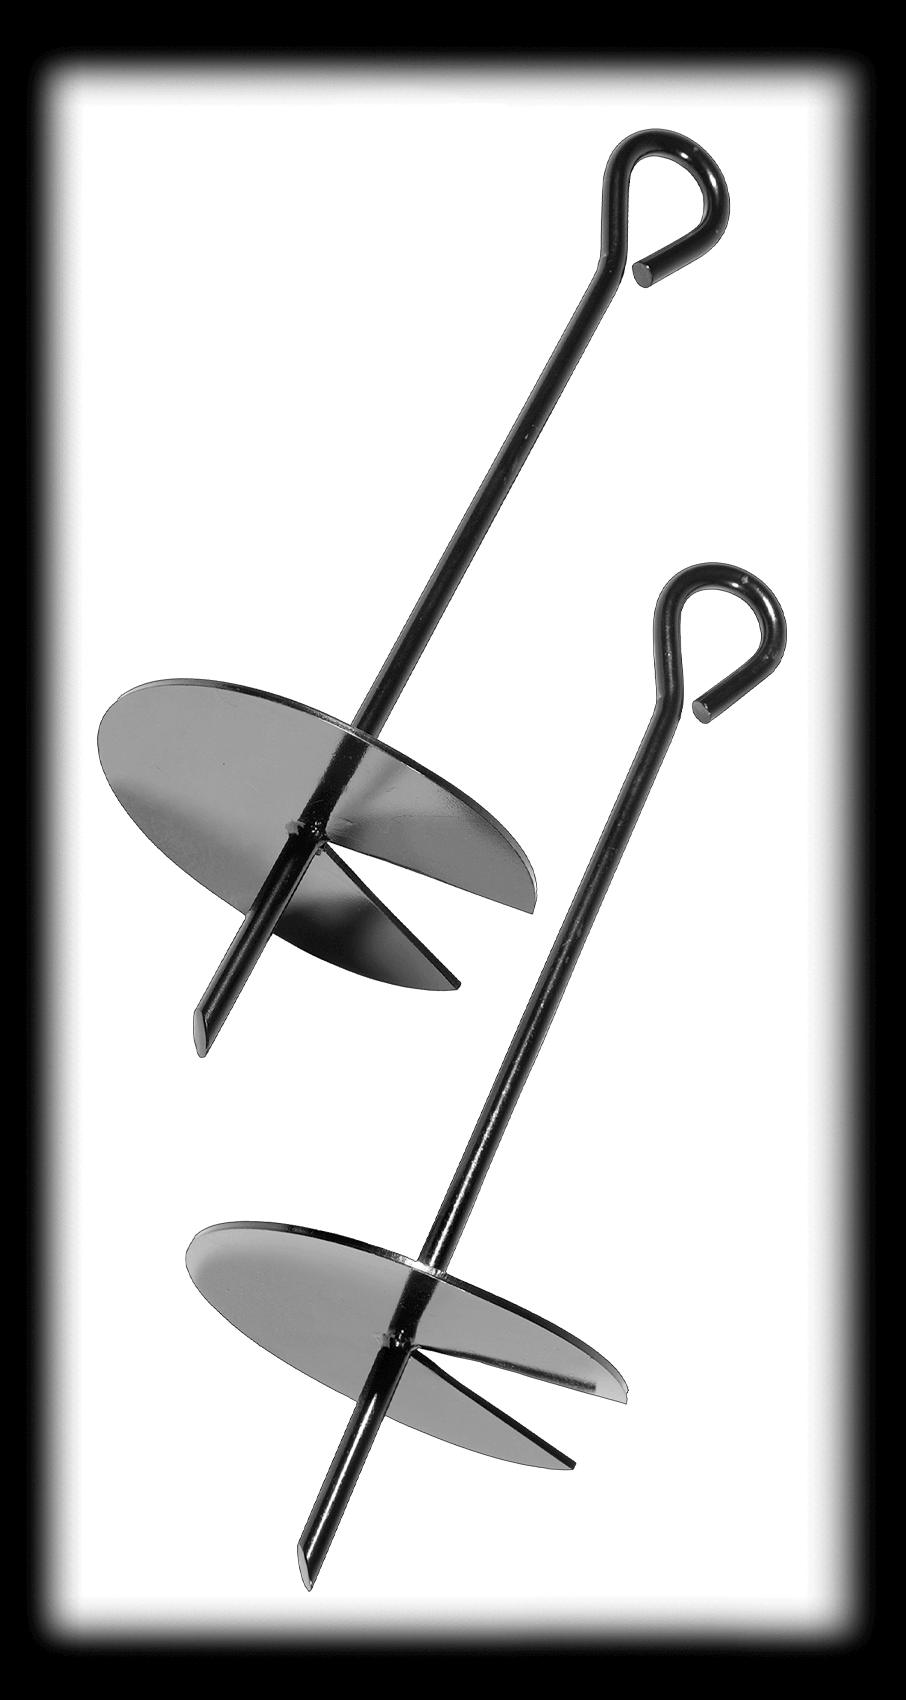 MODEL #PTAS-105 AUGER STAKES 2-PACK